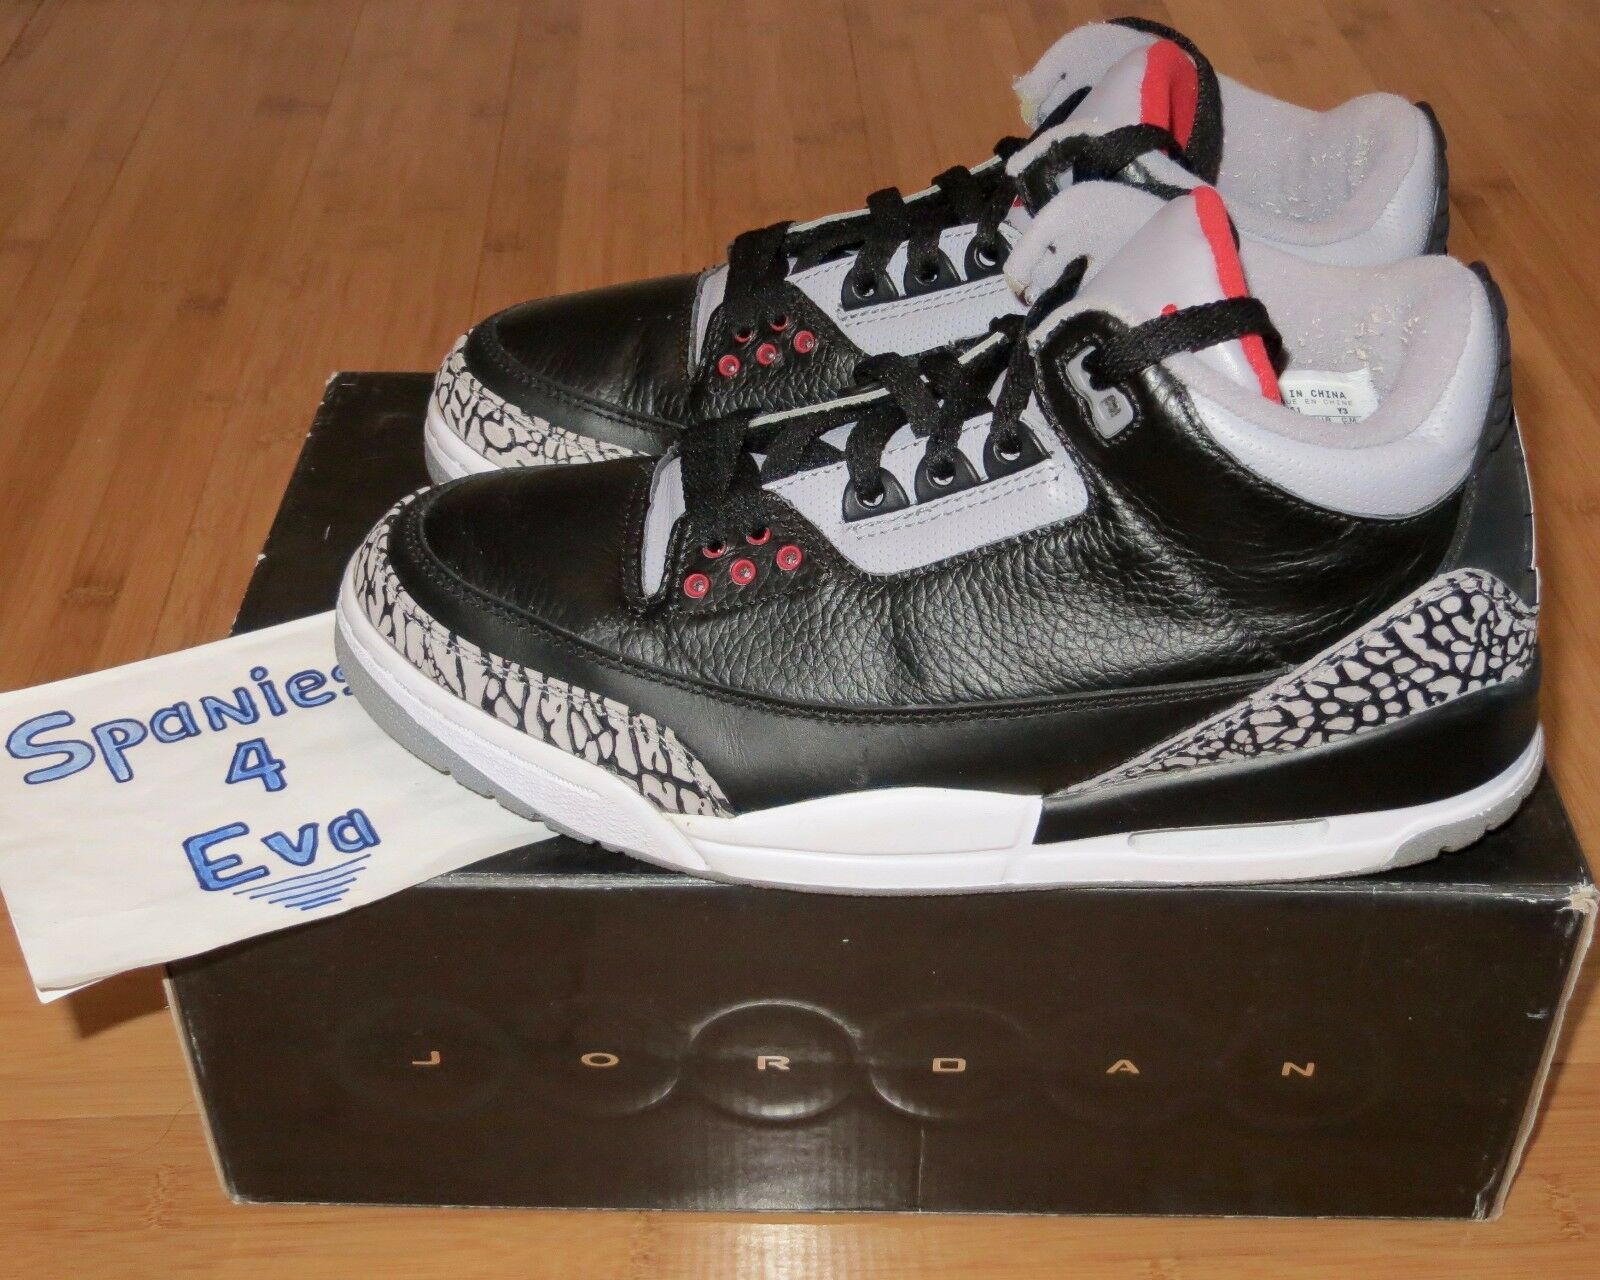 Nike Air Jordan 3 III Retro Black Cement Count Down Pack CDP Size 9.5 340254-061